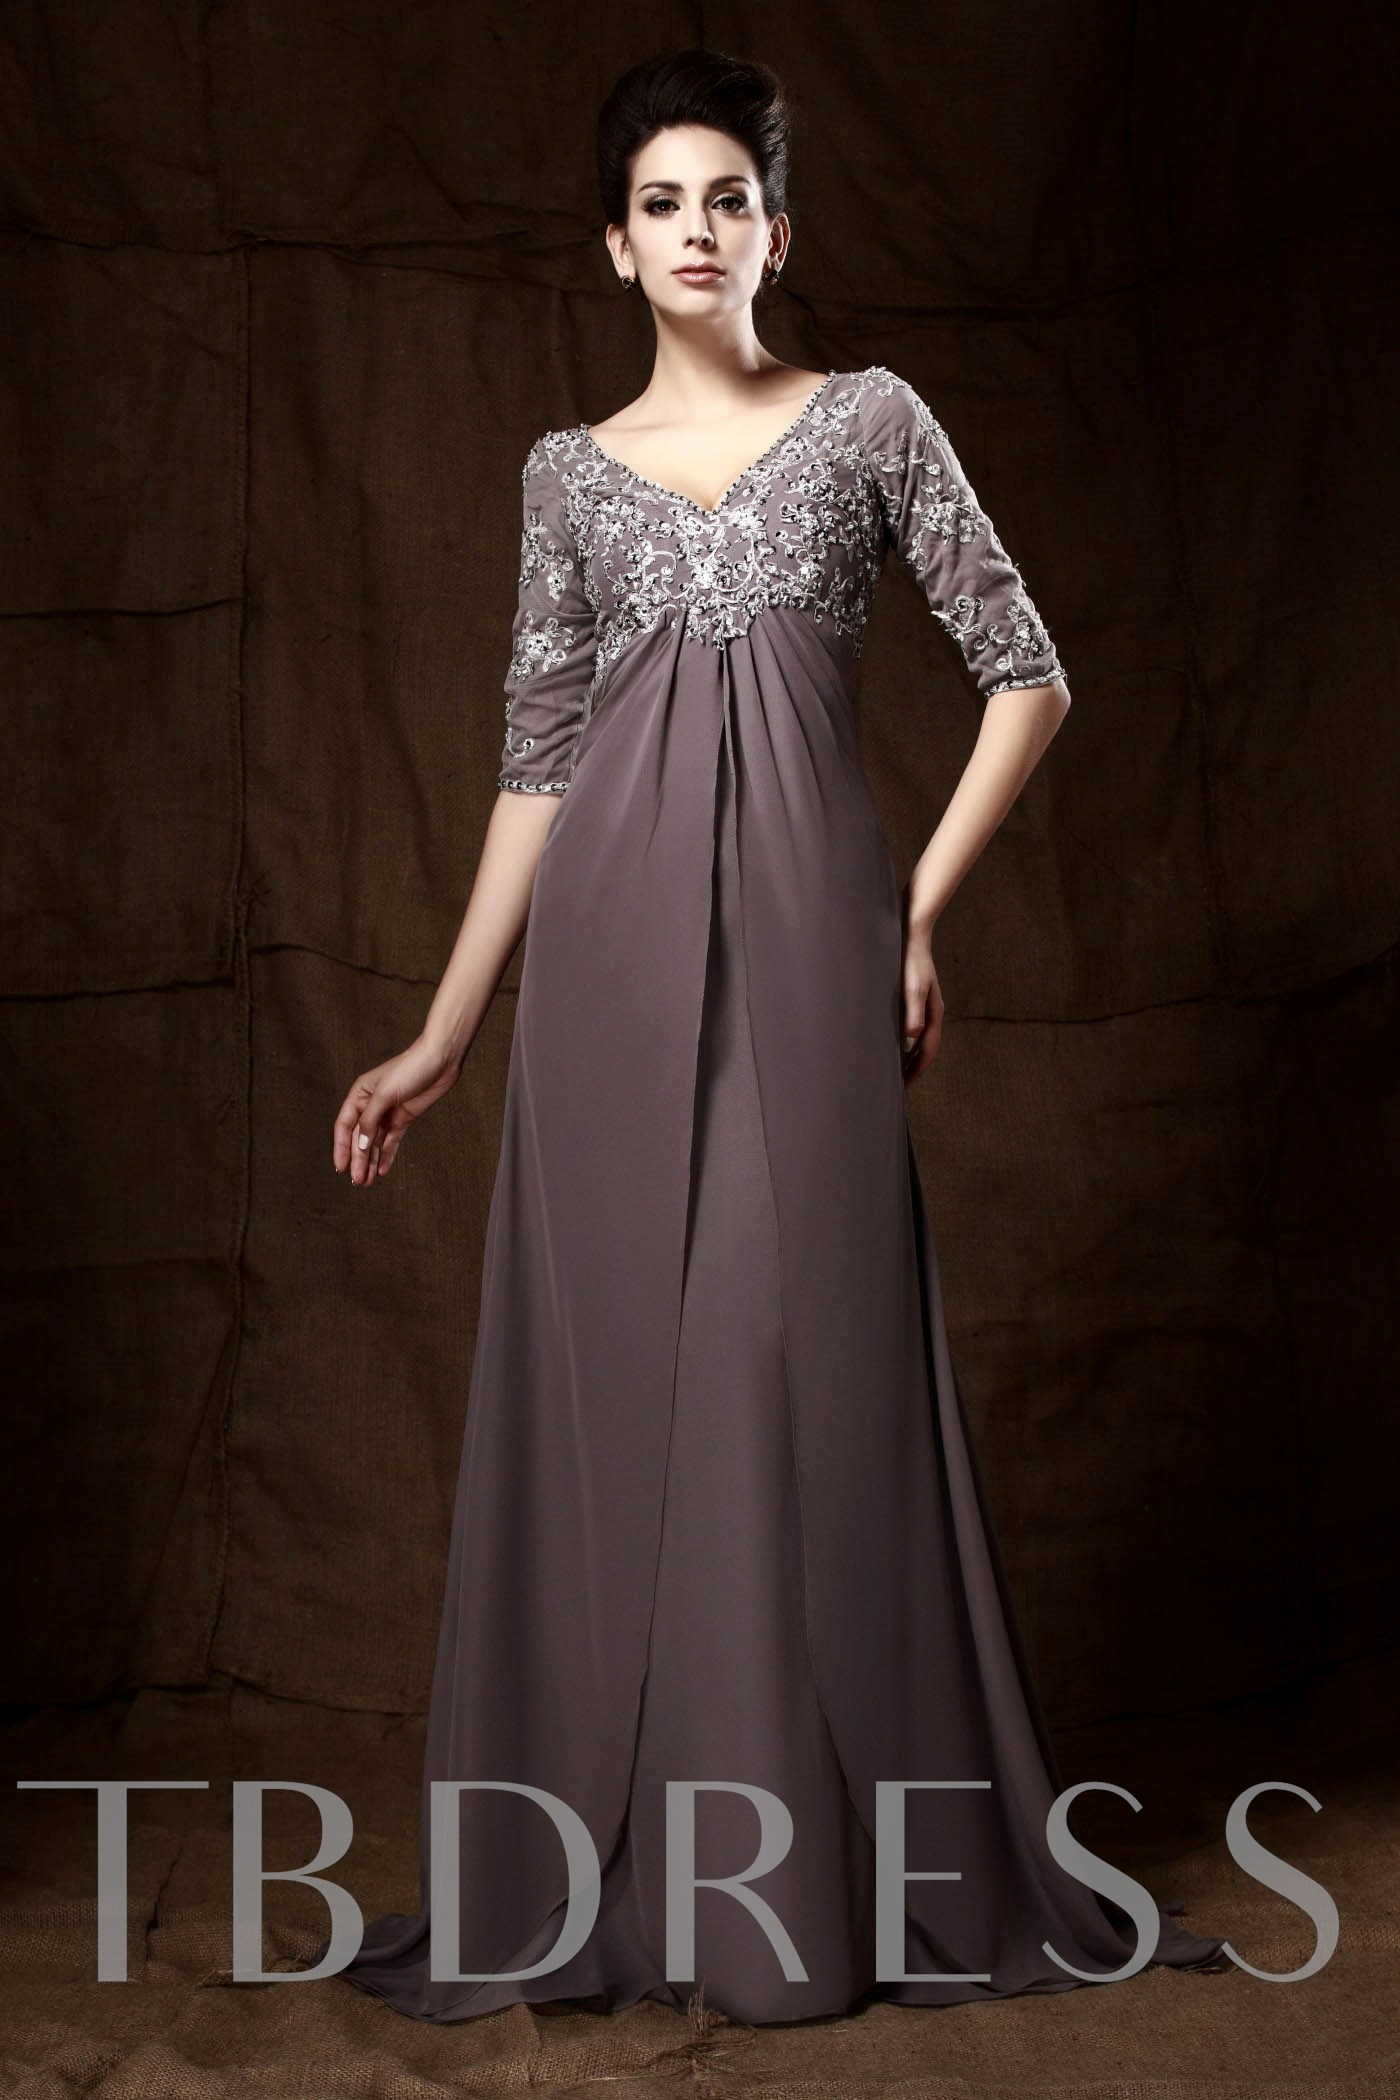 Image of Appliques Empire Waist Plus Size Mother of the Bride Dress